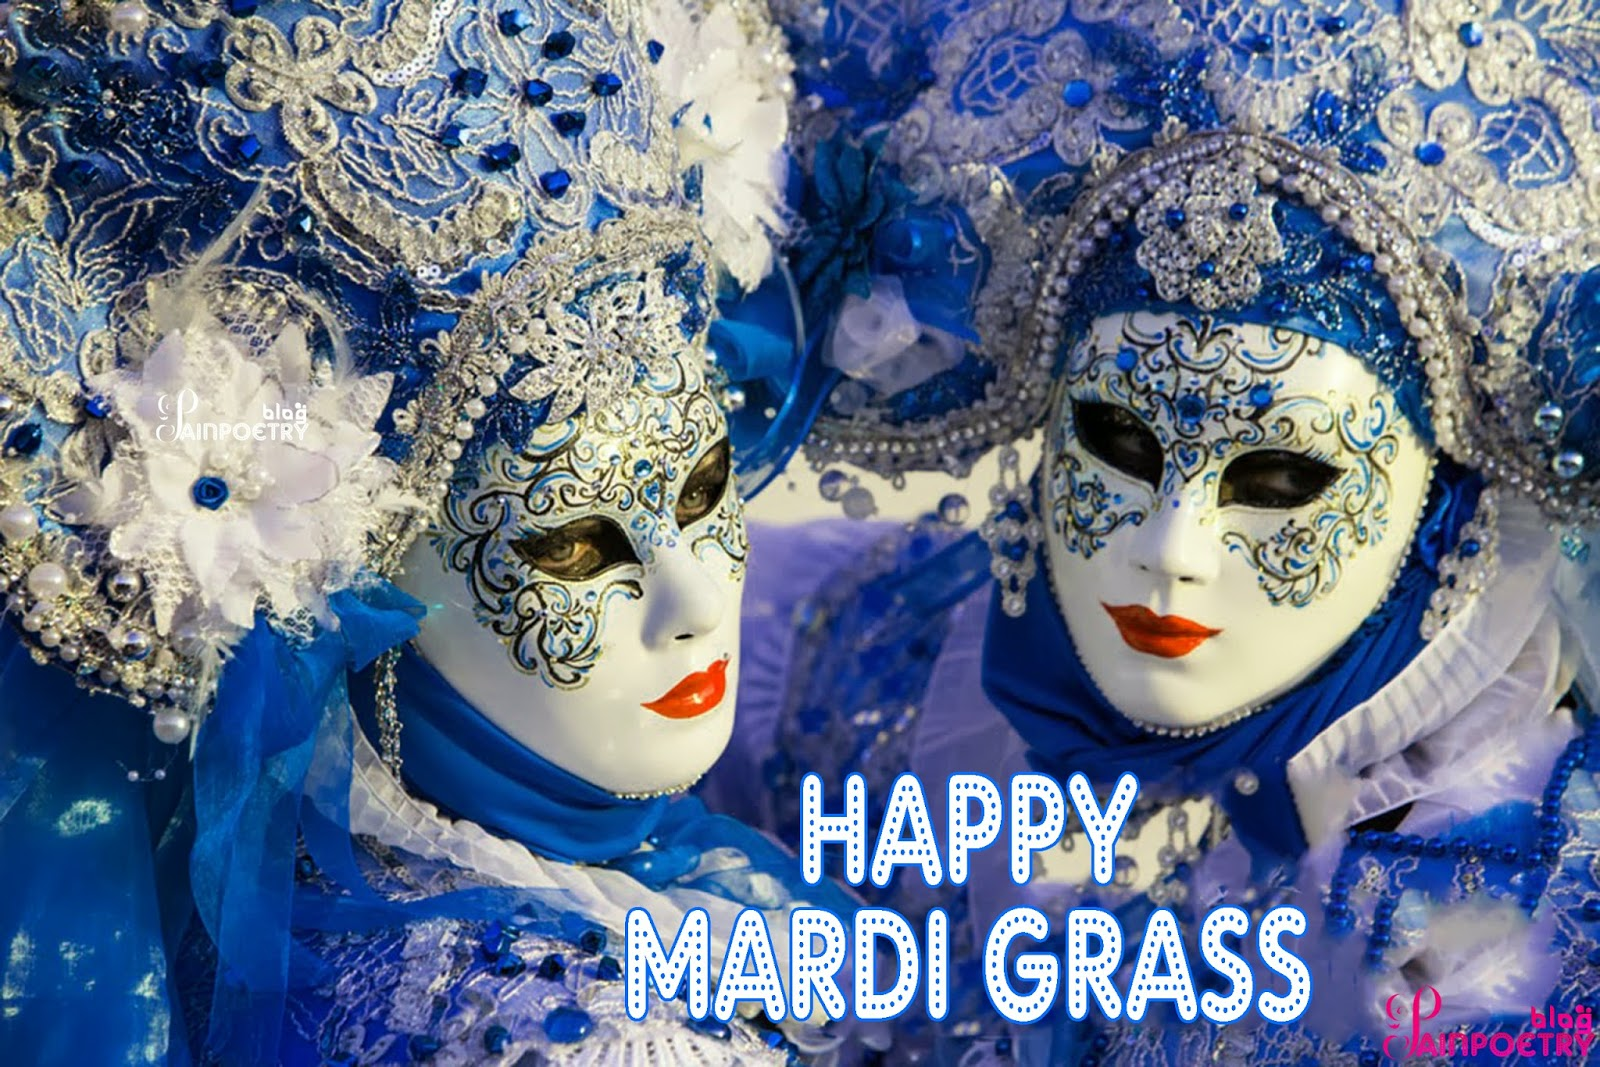 Happy-Mardi-Gras-Wishes-Wallpaper-eCard-Image-Photo-Wallpaper-Venetian-Carnival-Mask-Wide-HD